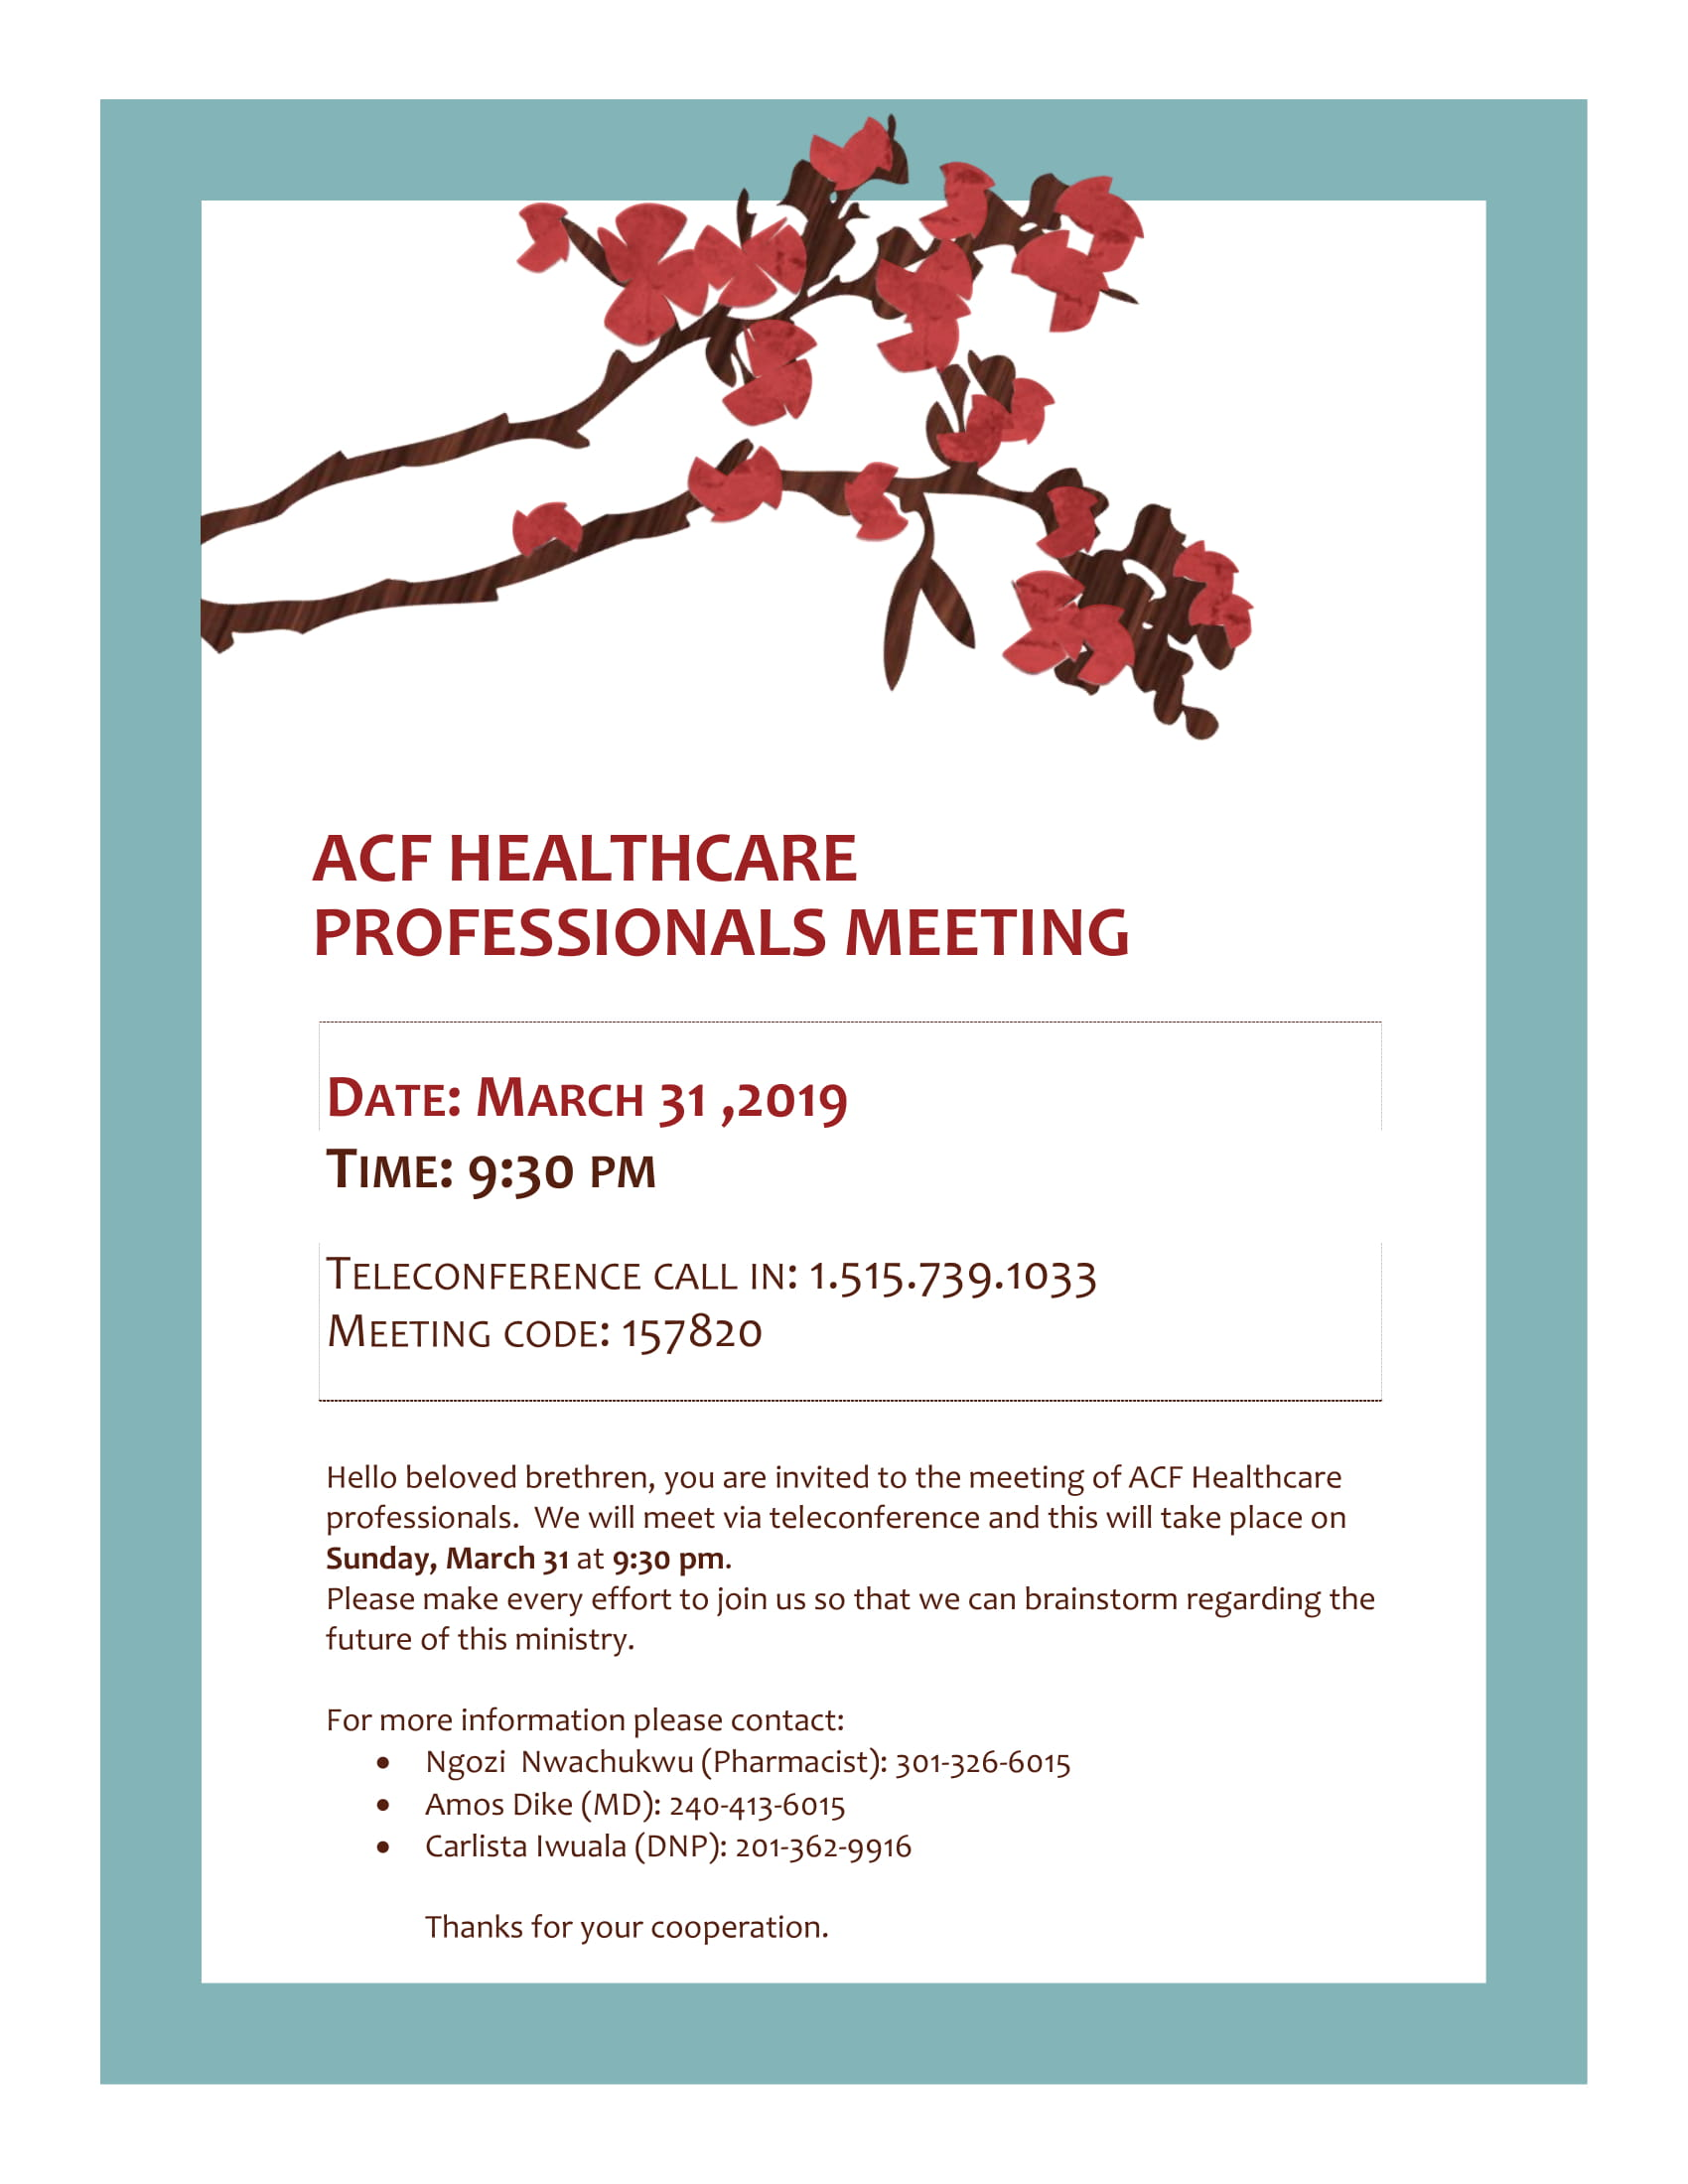 acf healthcare professionals meeting